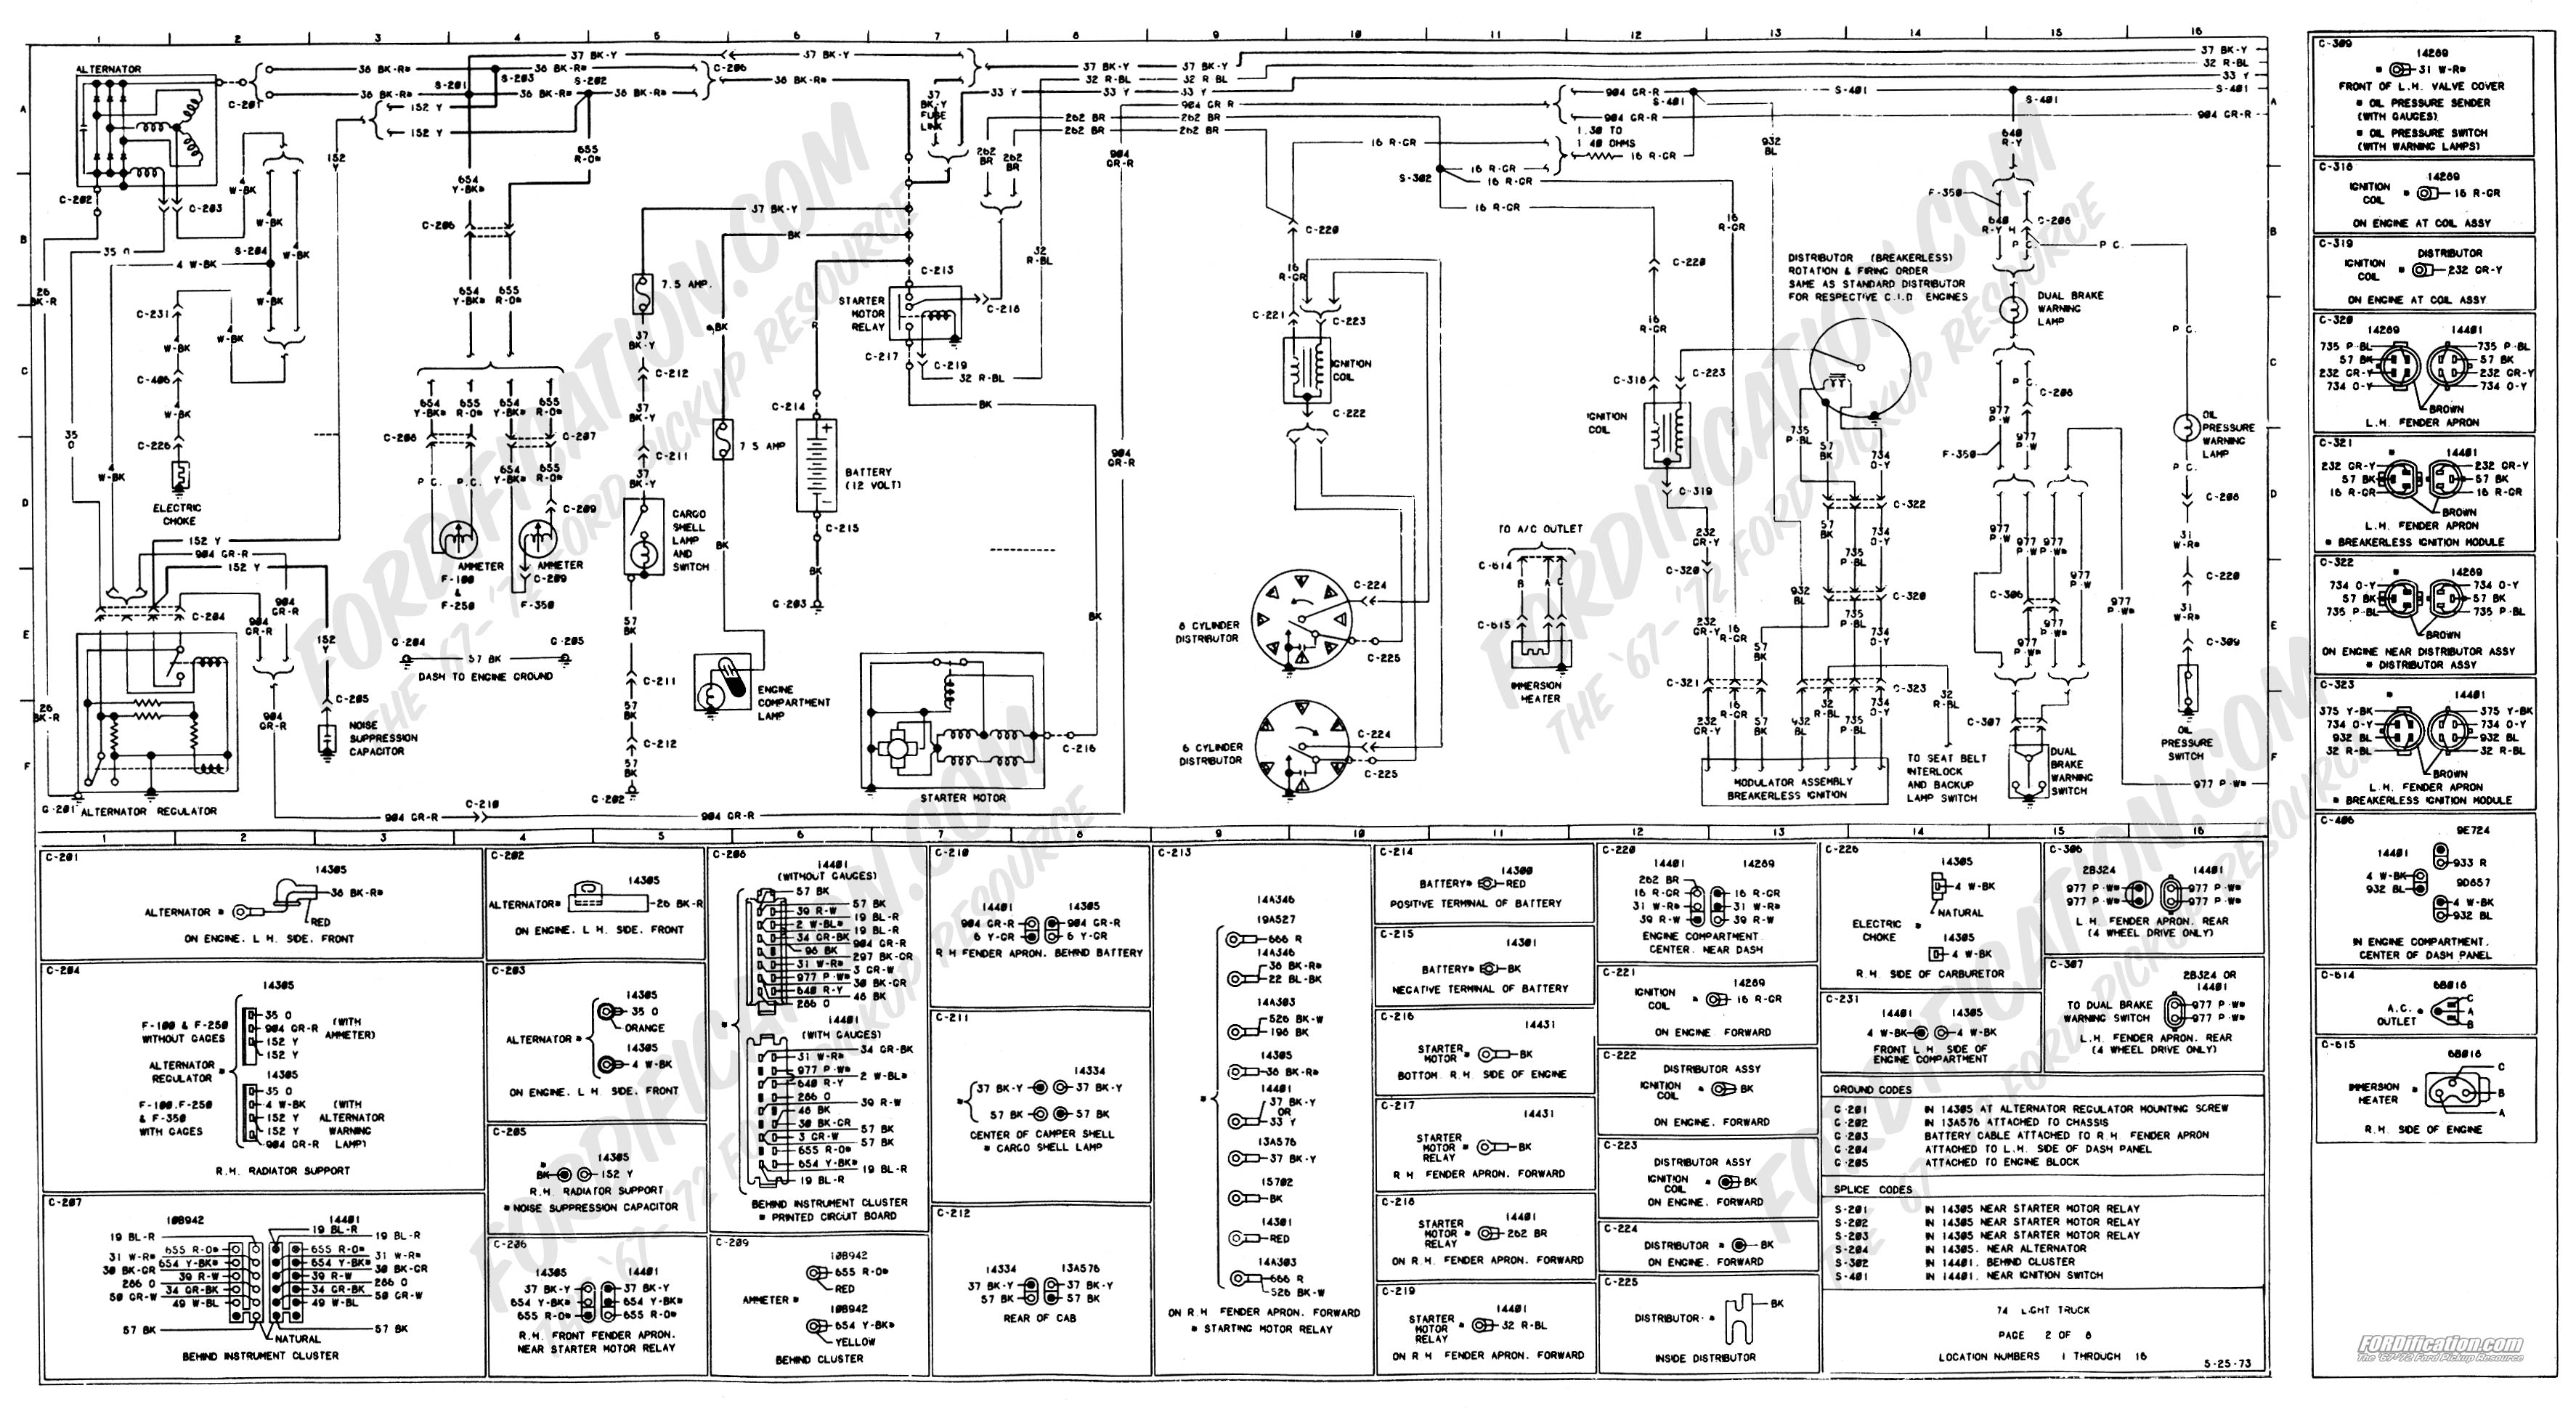 1978 ford f100 wiring diagram 79 ford truck wiring diagram ford rh sellfie co F150 Brake Light Wiring Diagram 1977 Ford F-150 Wiring Diagram